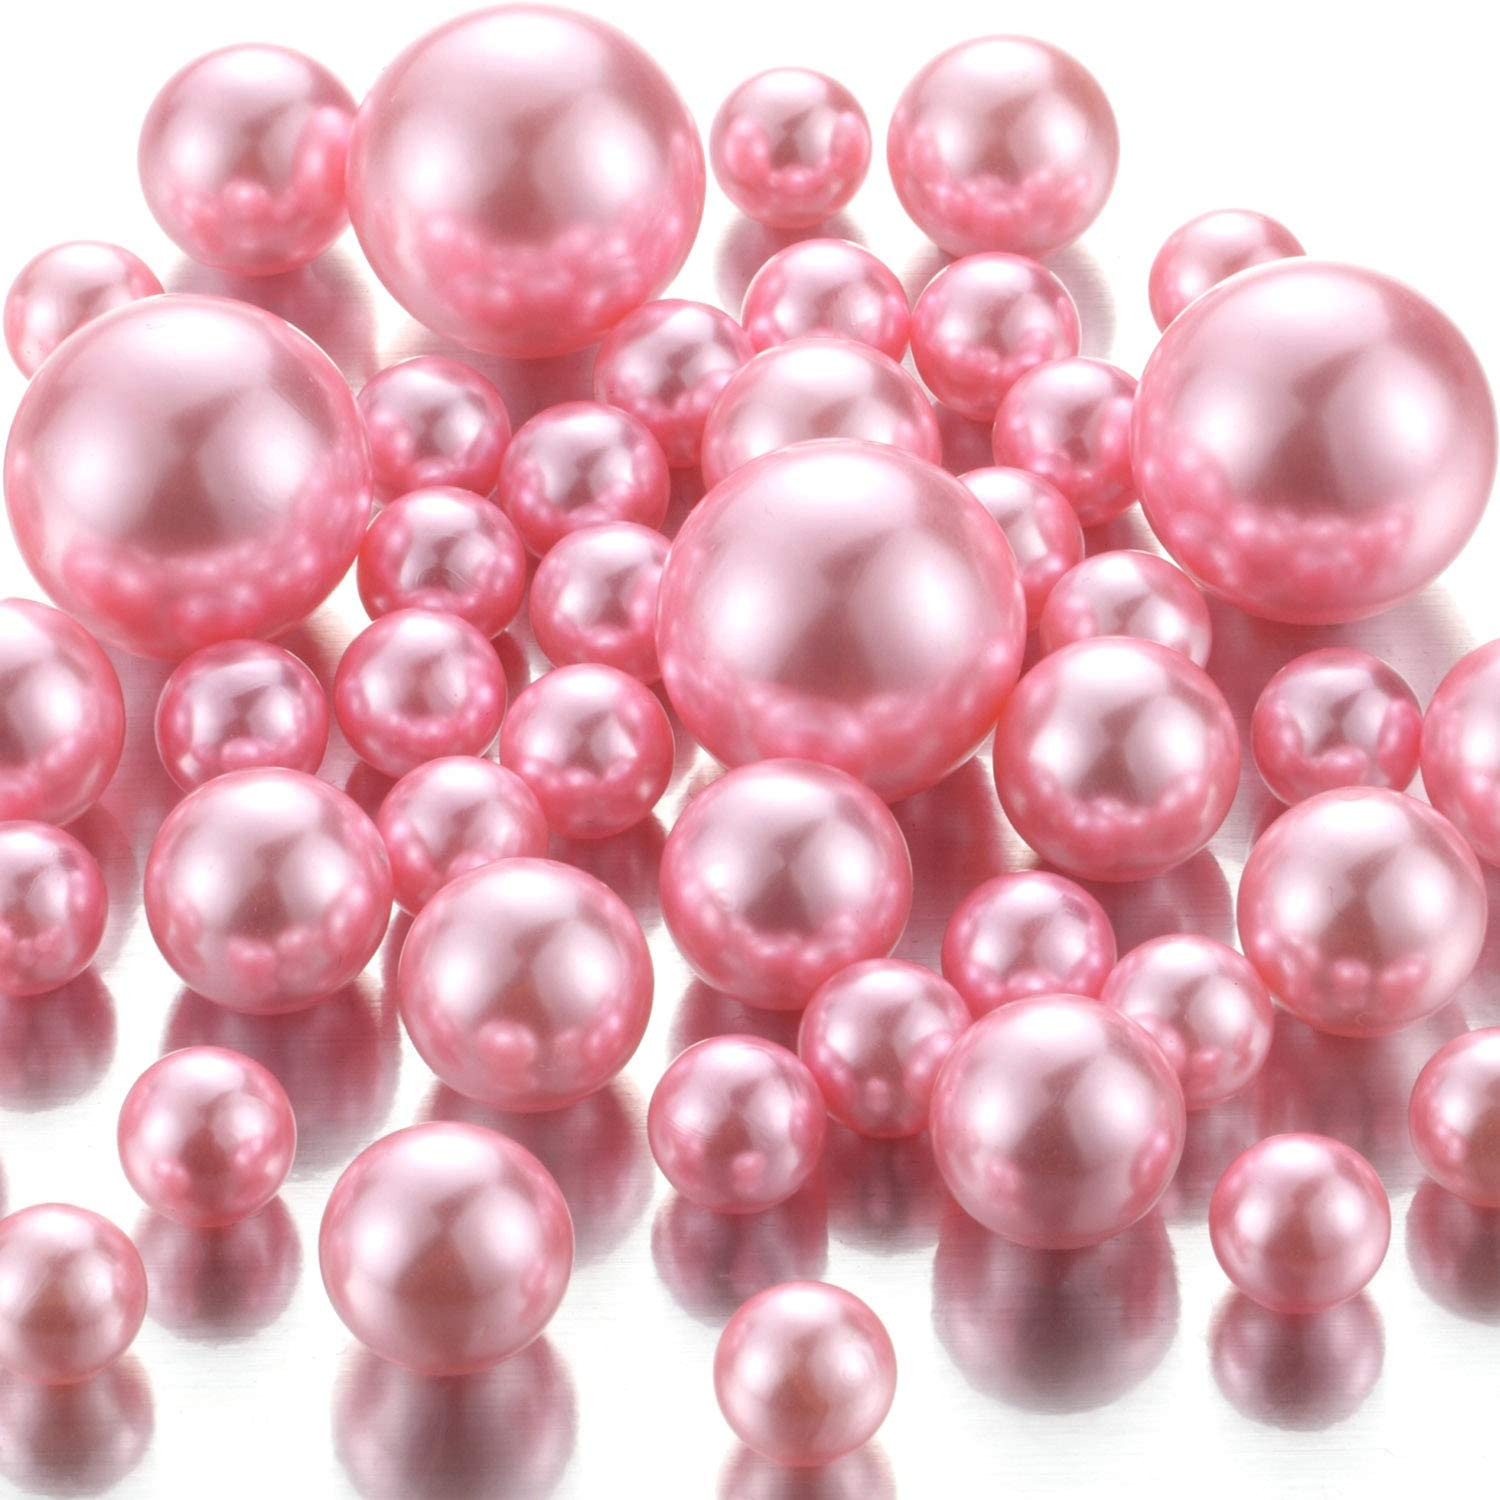 20mm Birthday No Hole Highlight Pearl Bead Vase Fillers for Centerpieces Anniversary 30mm DIY Weddings 100PCS Dreamy Purple Floating Pearls Beads for Vases and 14mm Valentines Day Centerpiece